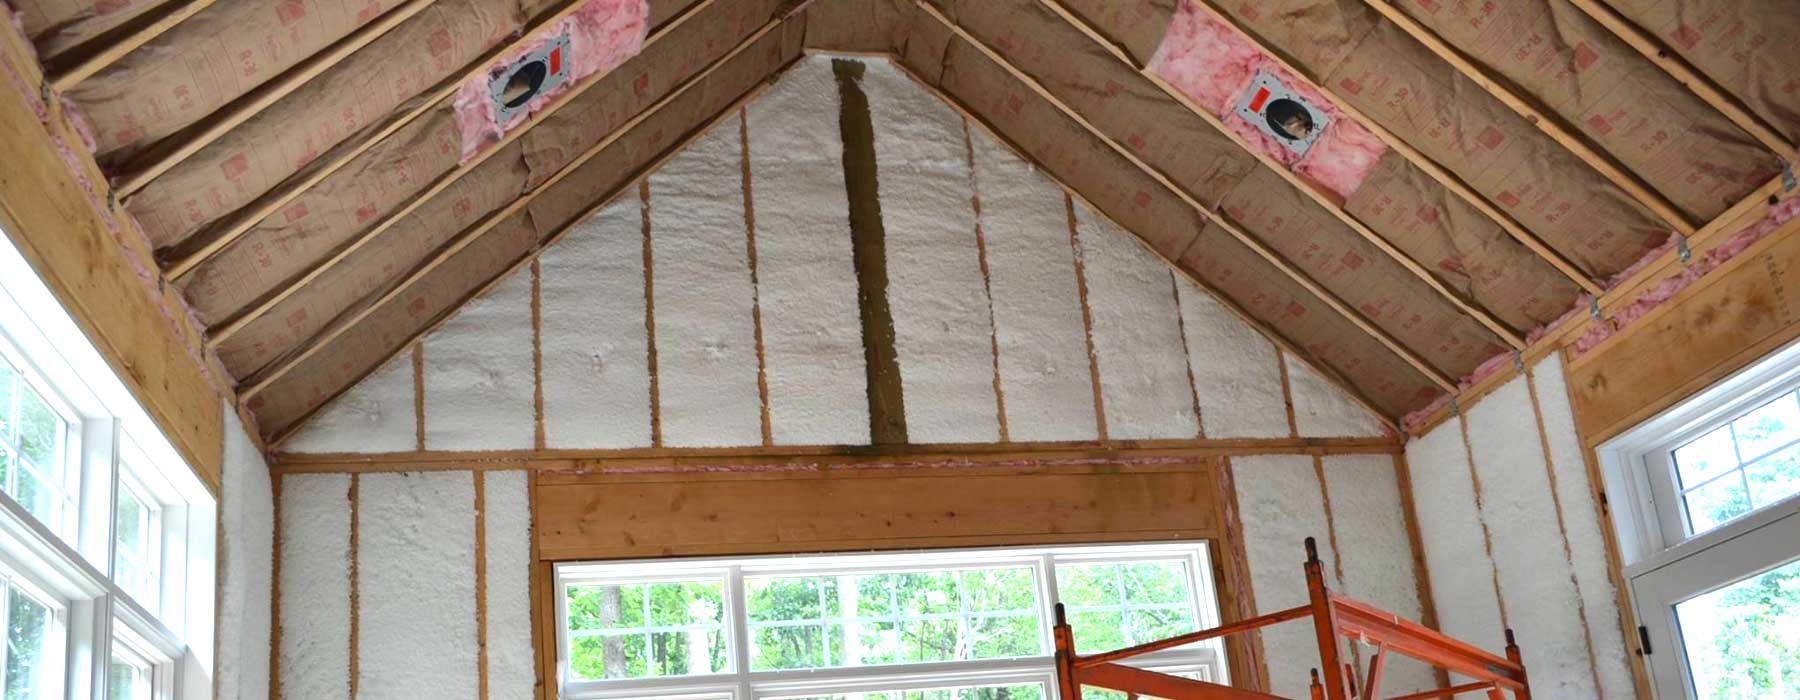 Insulation in rafters and studs